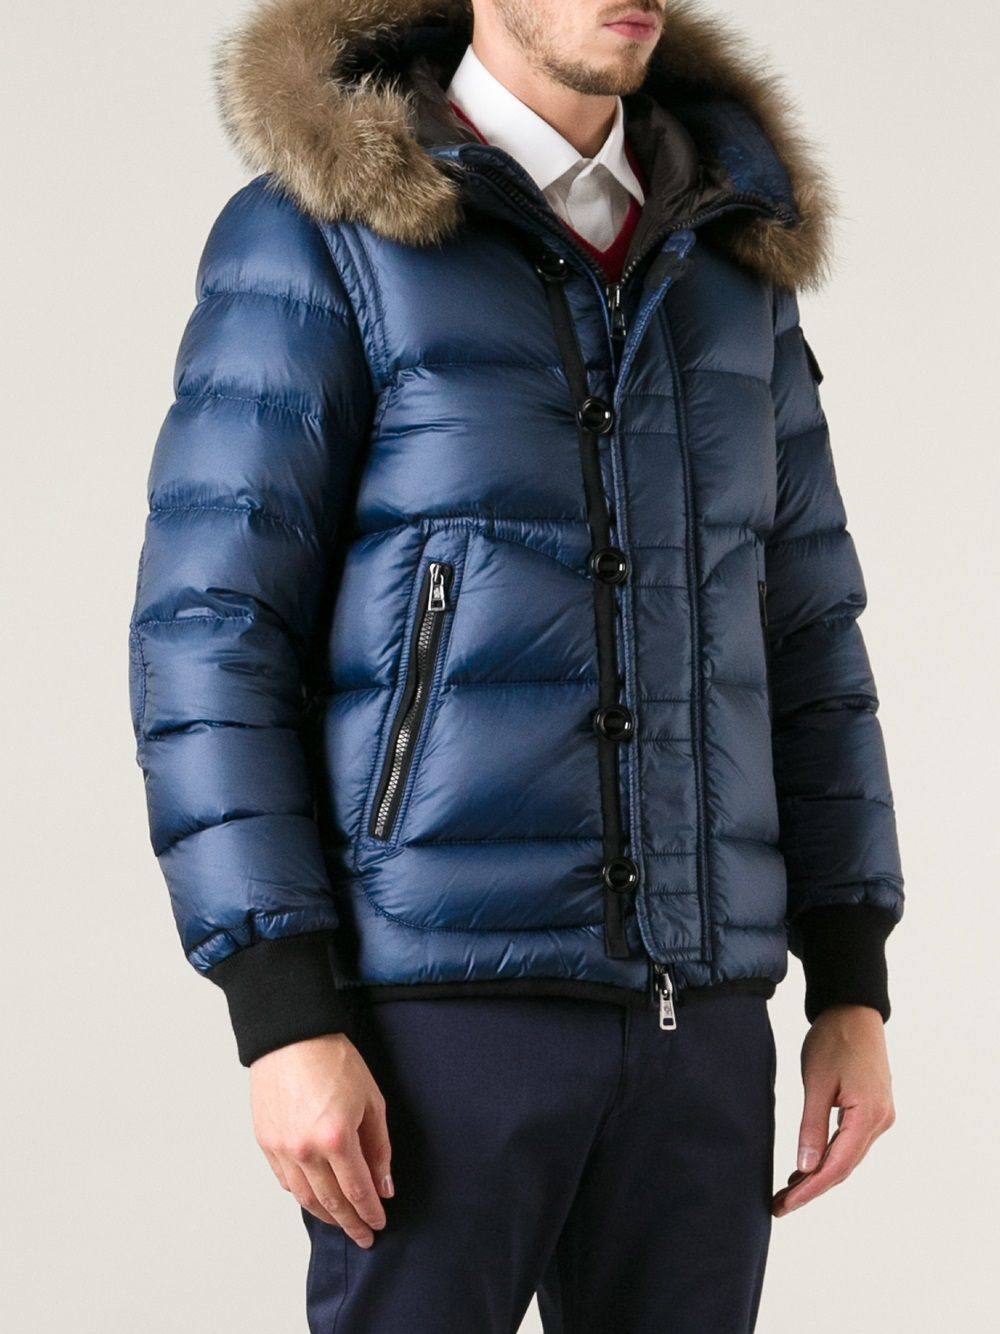 35431b337ef4 Moncler  marseille  Padded Jacket.   MEN S STYLE   Pinterest ...